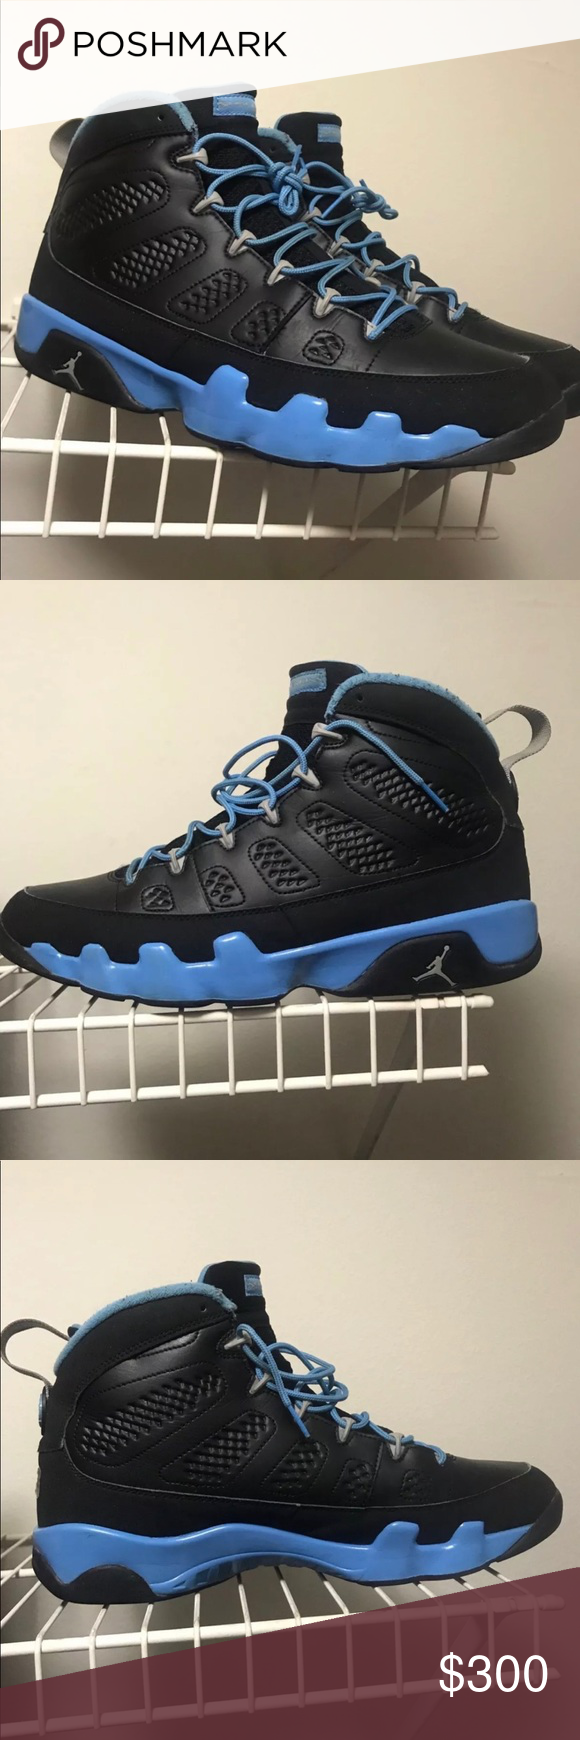 finest selection 3be5a 43676 Slim Jenkins 9's size 13 Very great condition only worn a ...